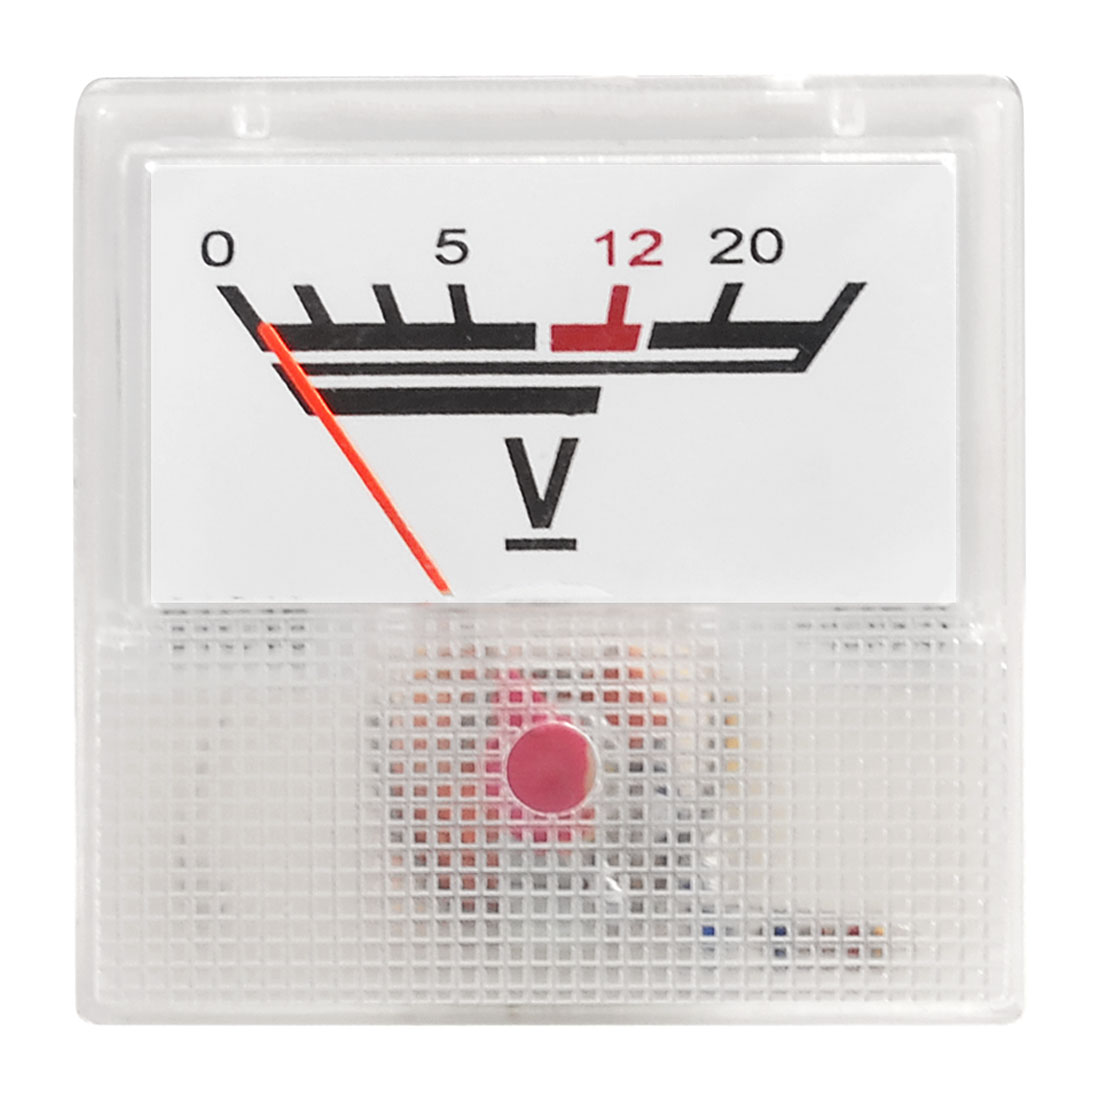 Plastic Housing 91C16 DC 0-20V Scale Range Analog Voltmeter Panel Meter